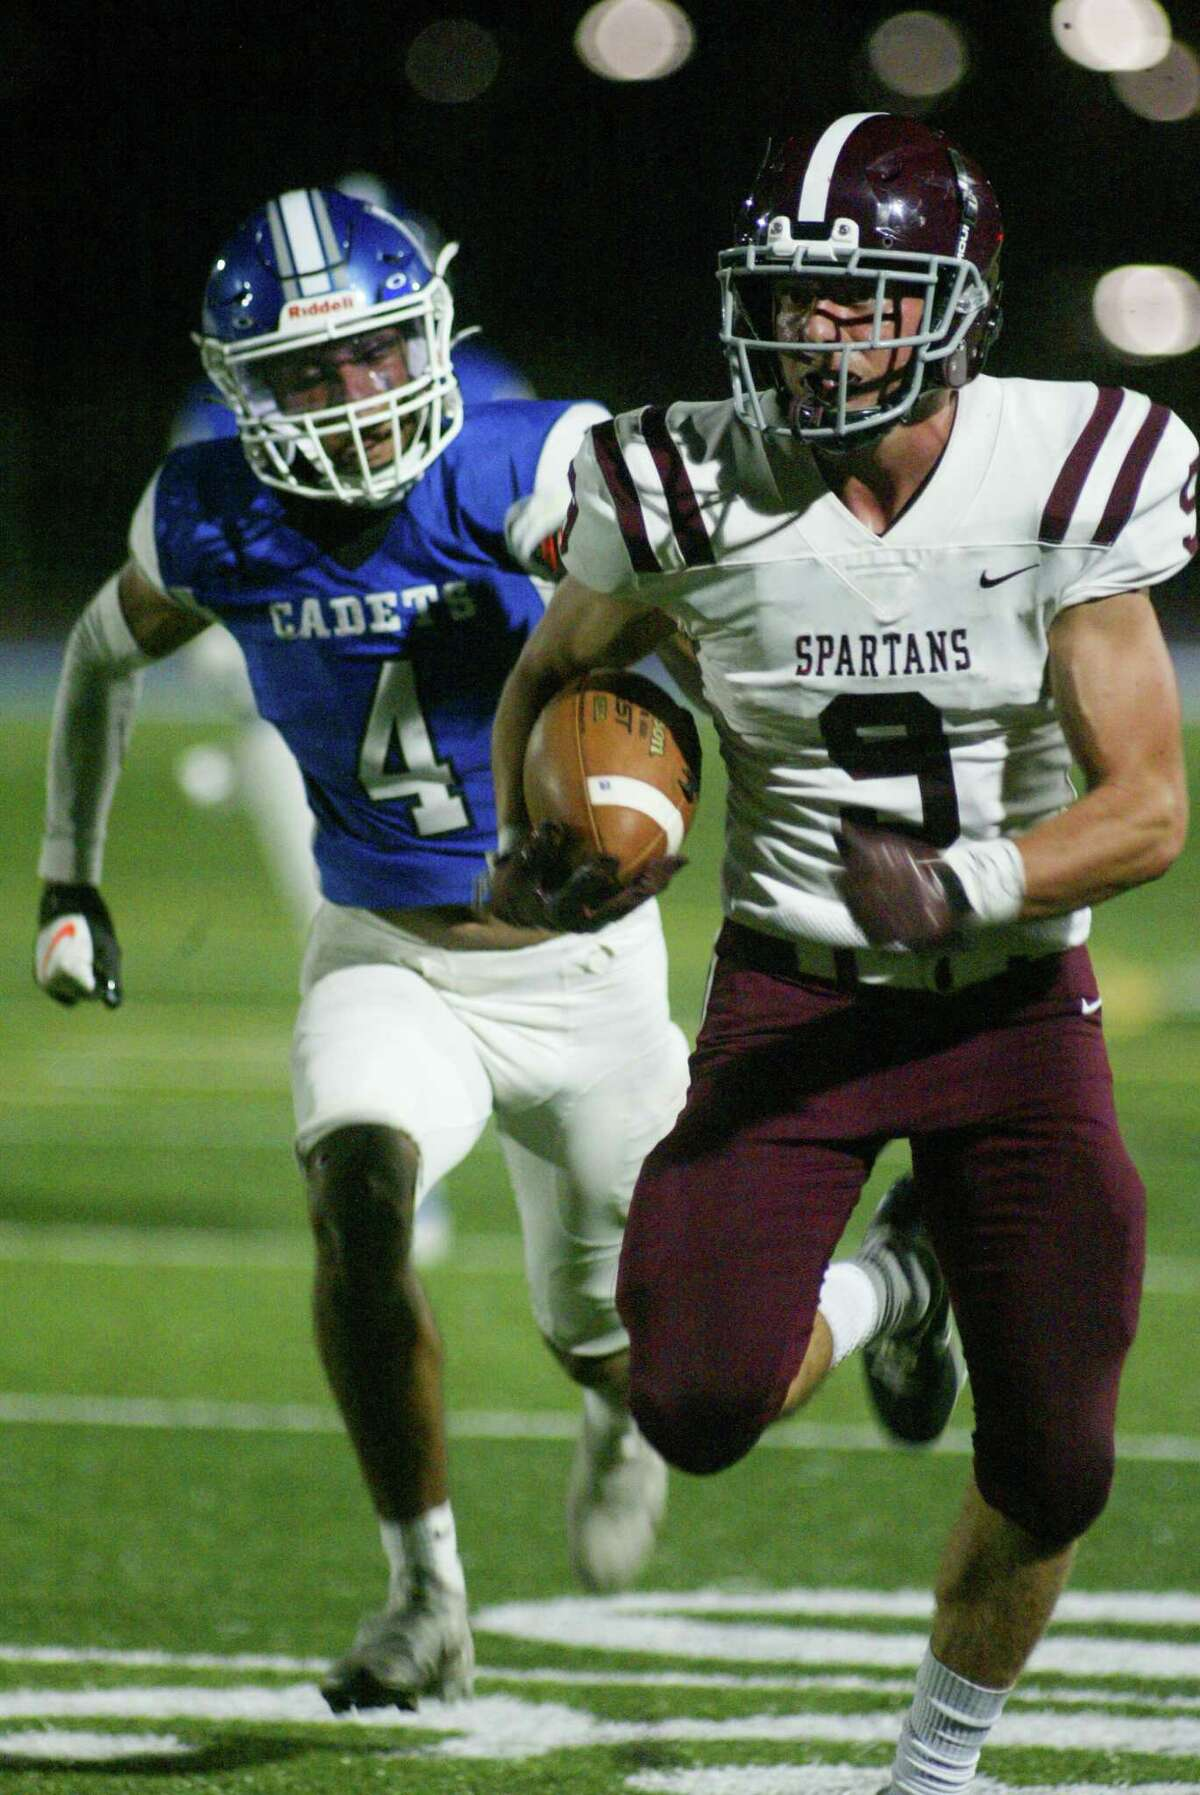 Burnt Hill receiver Rocco Mareno races for a second-half touchdown as Damani Canty of La Salle races to catch up during Burnt Hills' 24-21 victory over La Salle in Troy on Sept. 24, 2021. (Jon Winslow / Special to the Times Union)